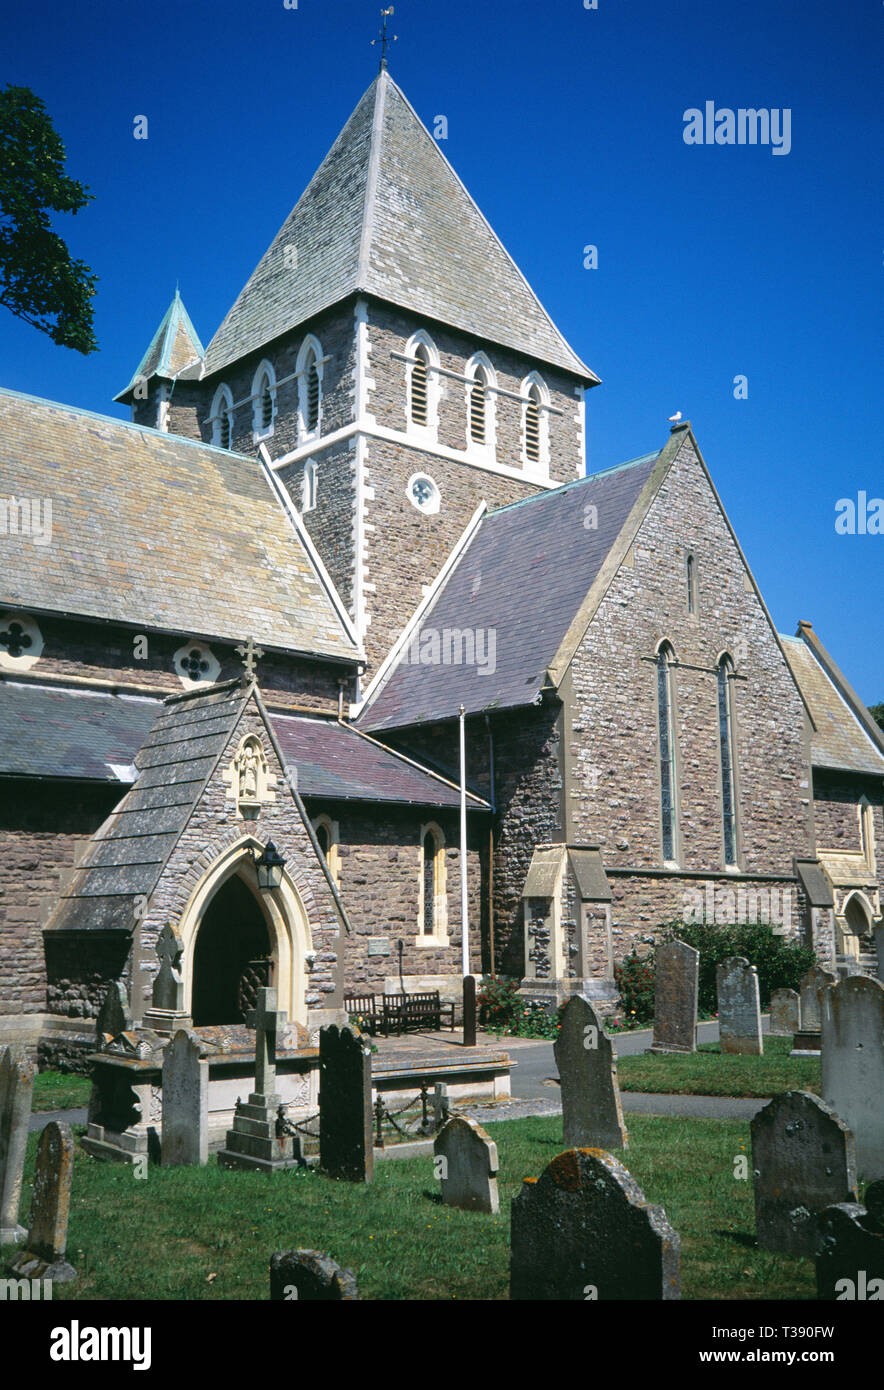 Channel Islands. Alderney. St Anne. View of St Anne's Church and graveyard. - Stock Image